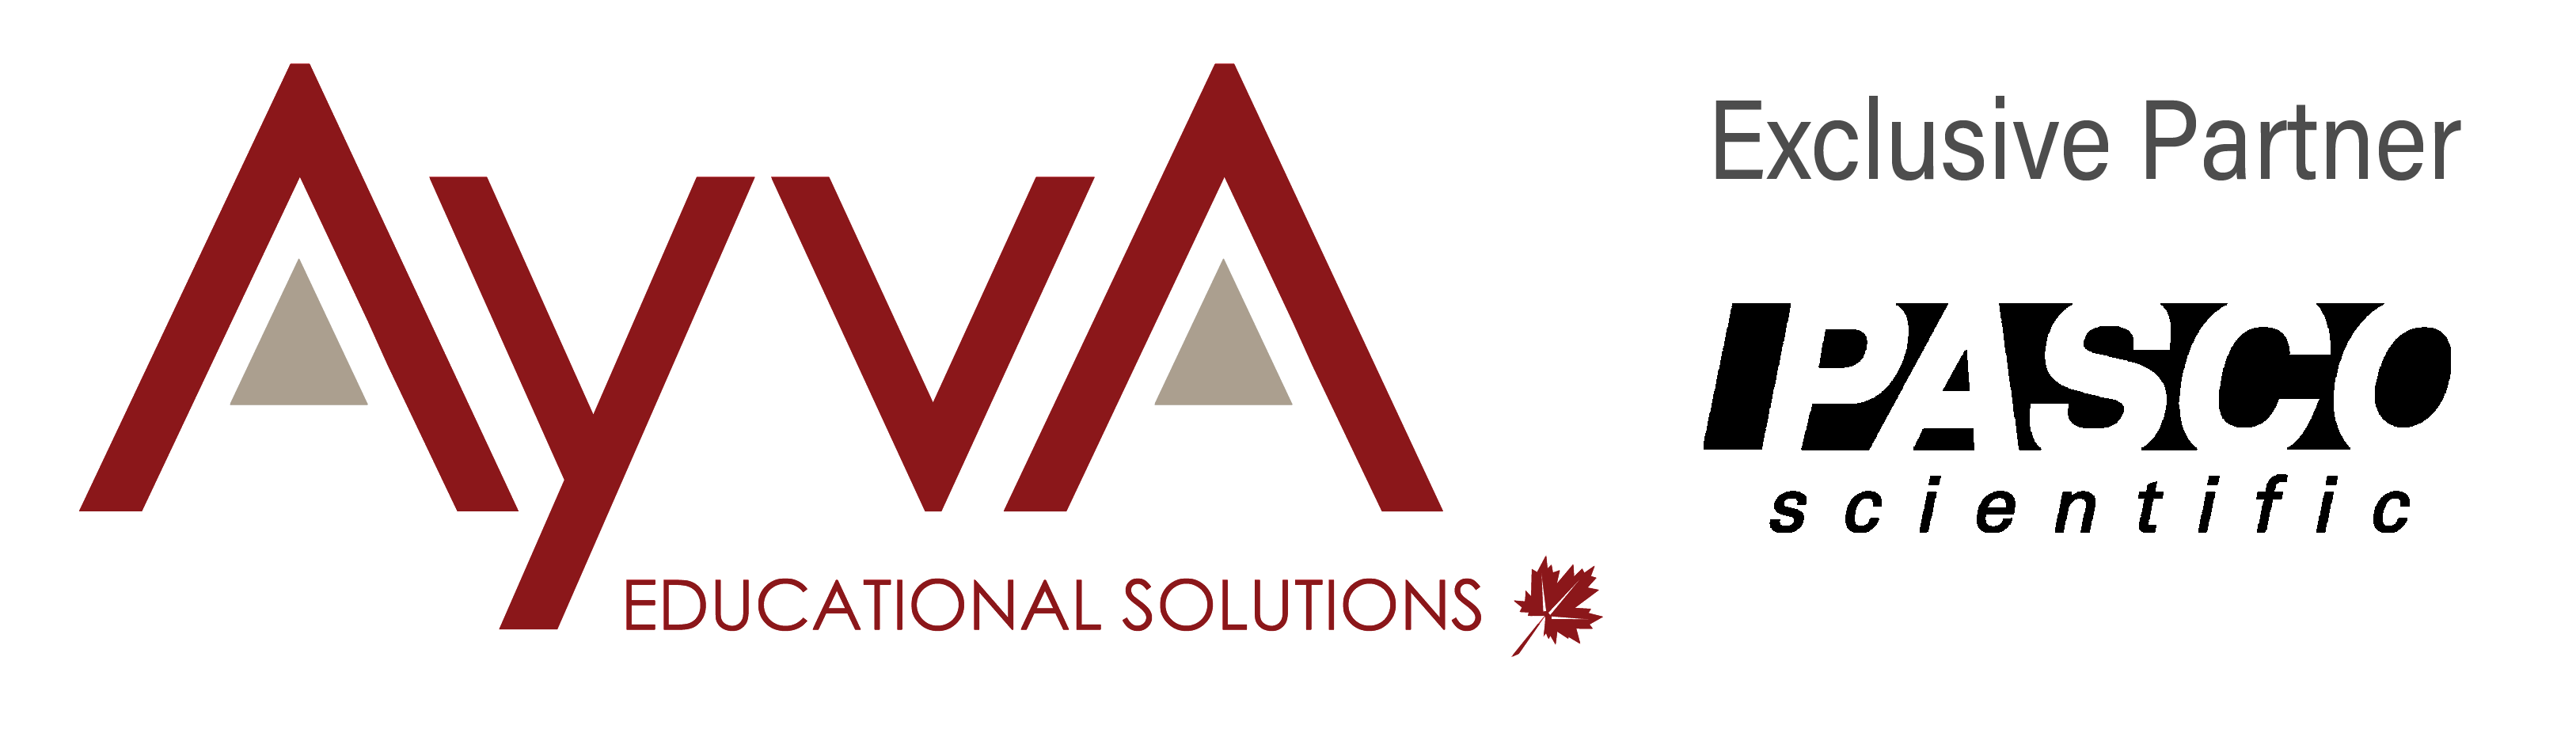 AYVA Educational Solutions